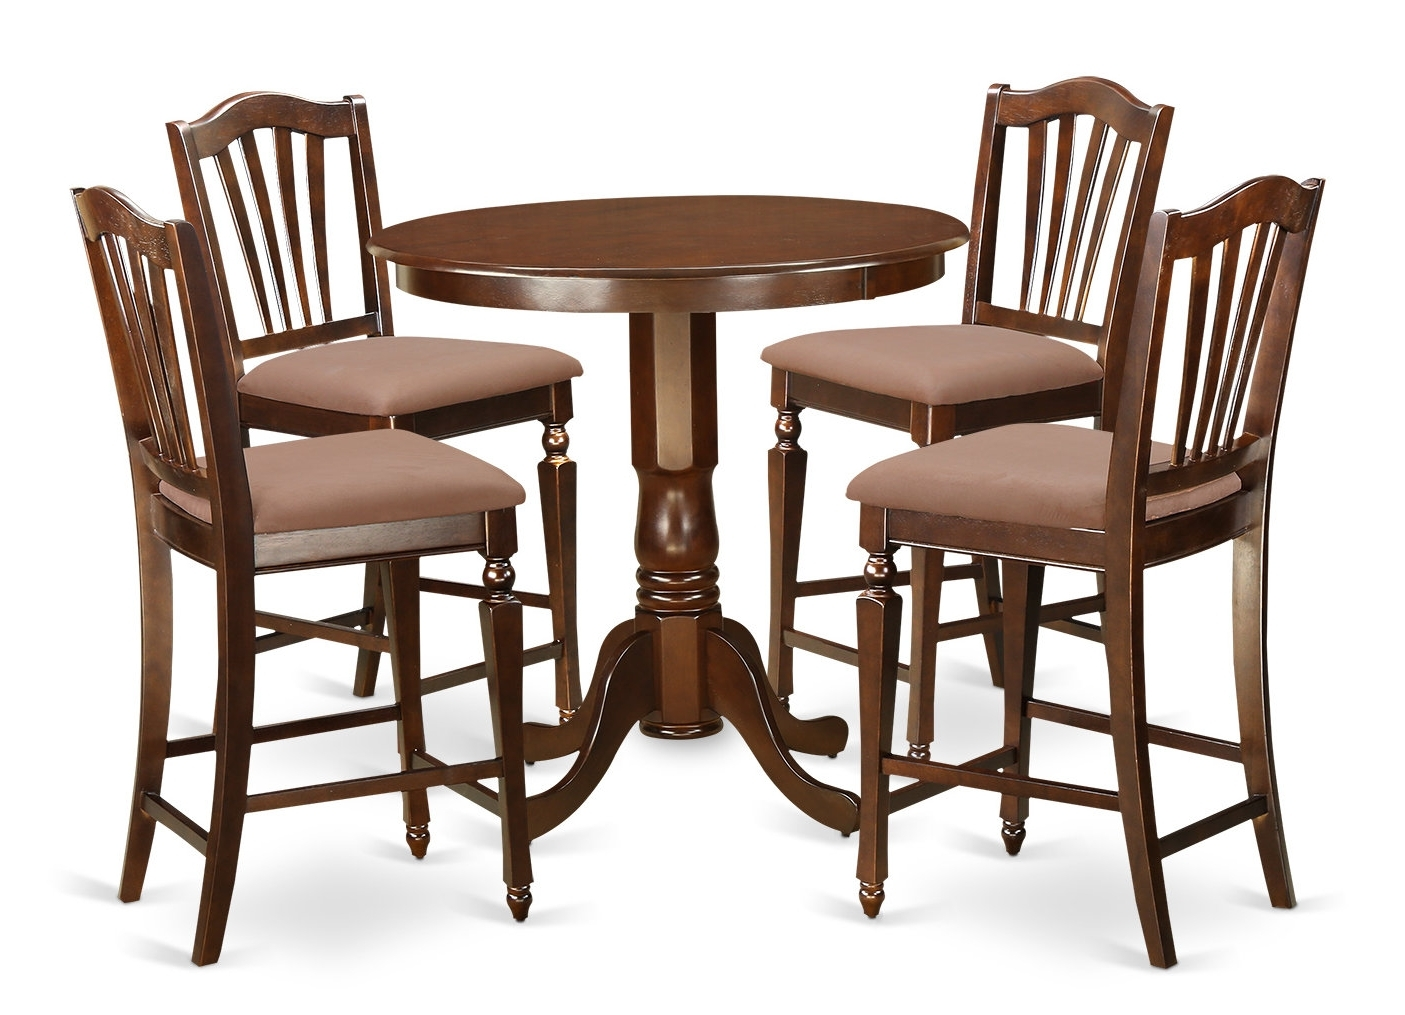 East West Jackson 5 Piece Counter Height Pub Table Set (View 23 of 25)